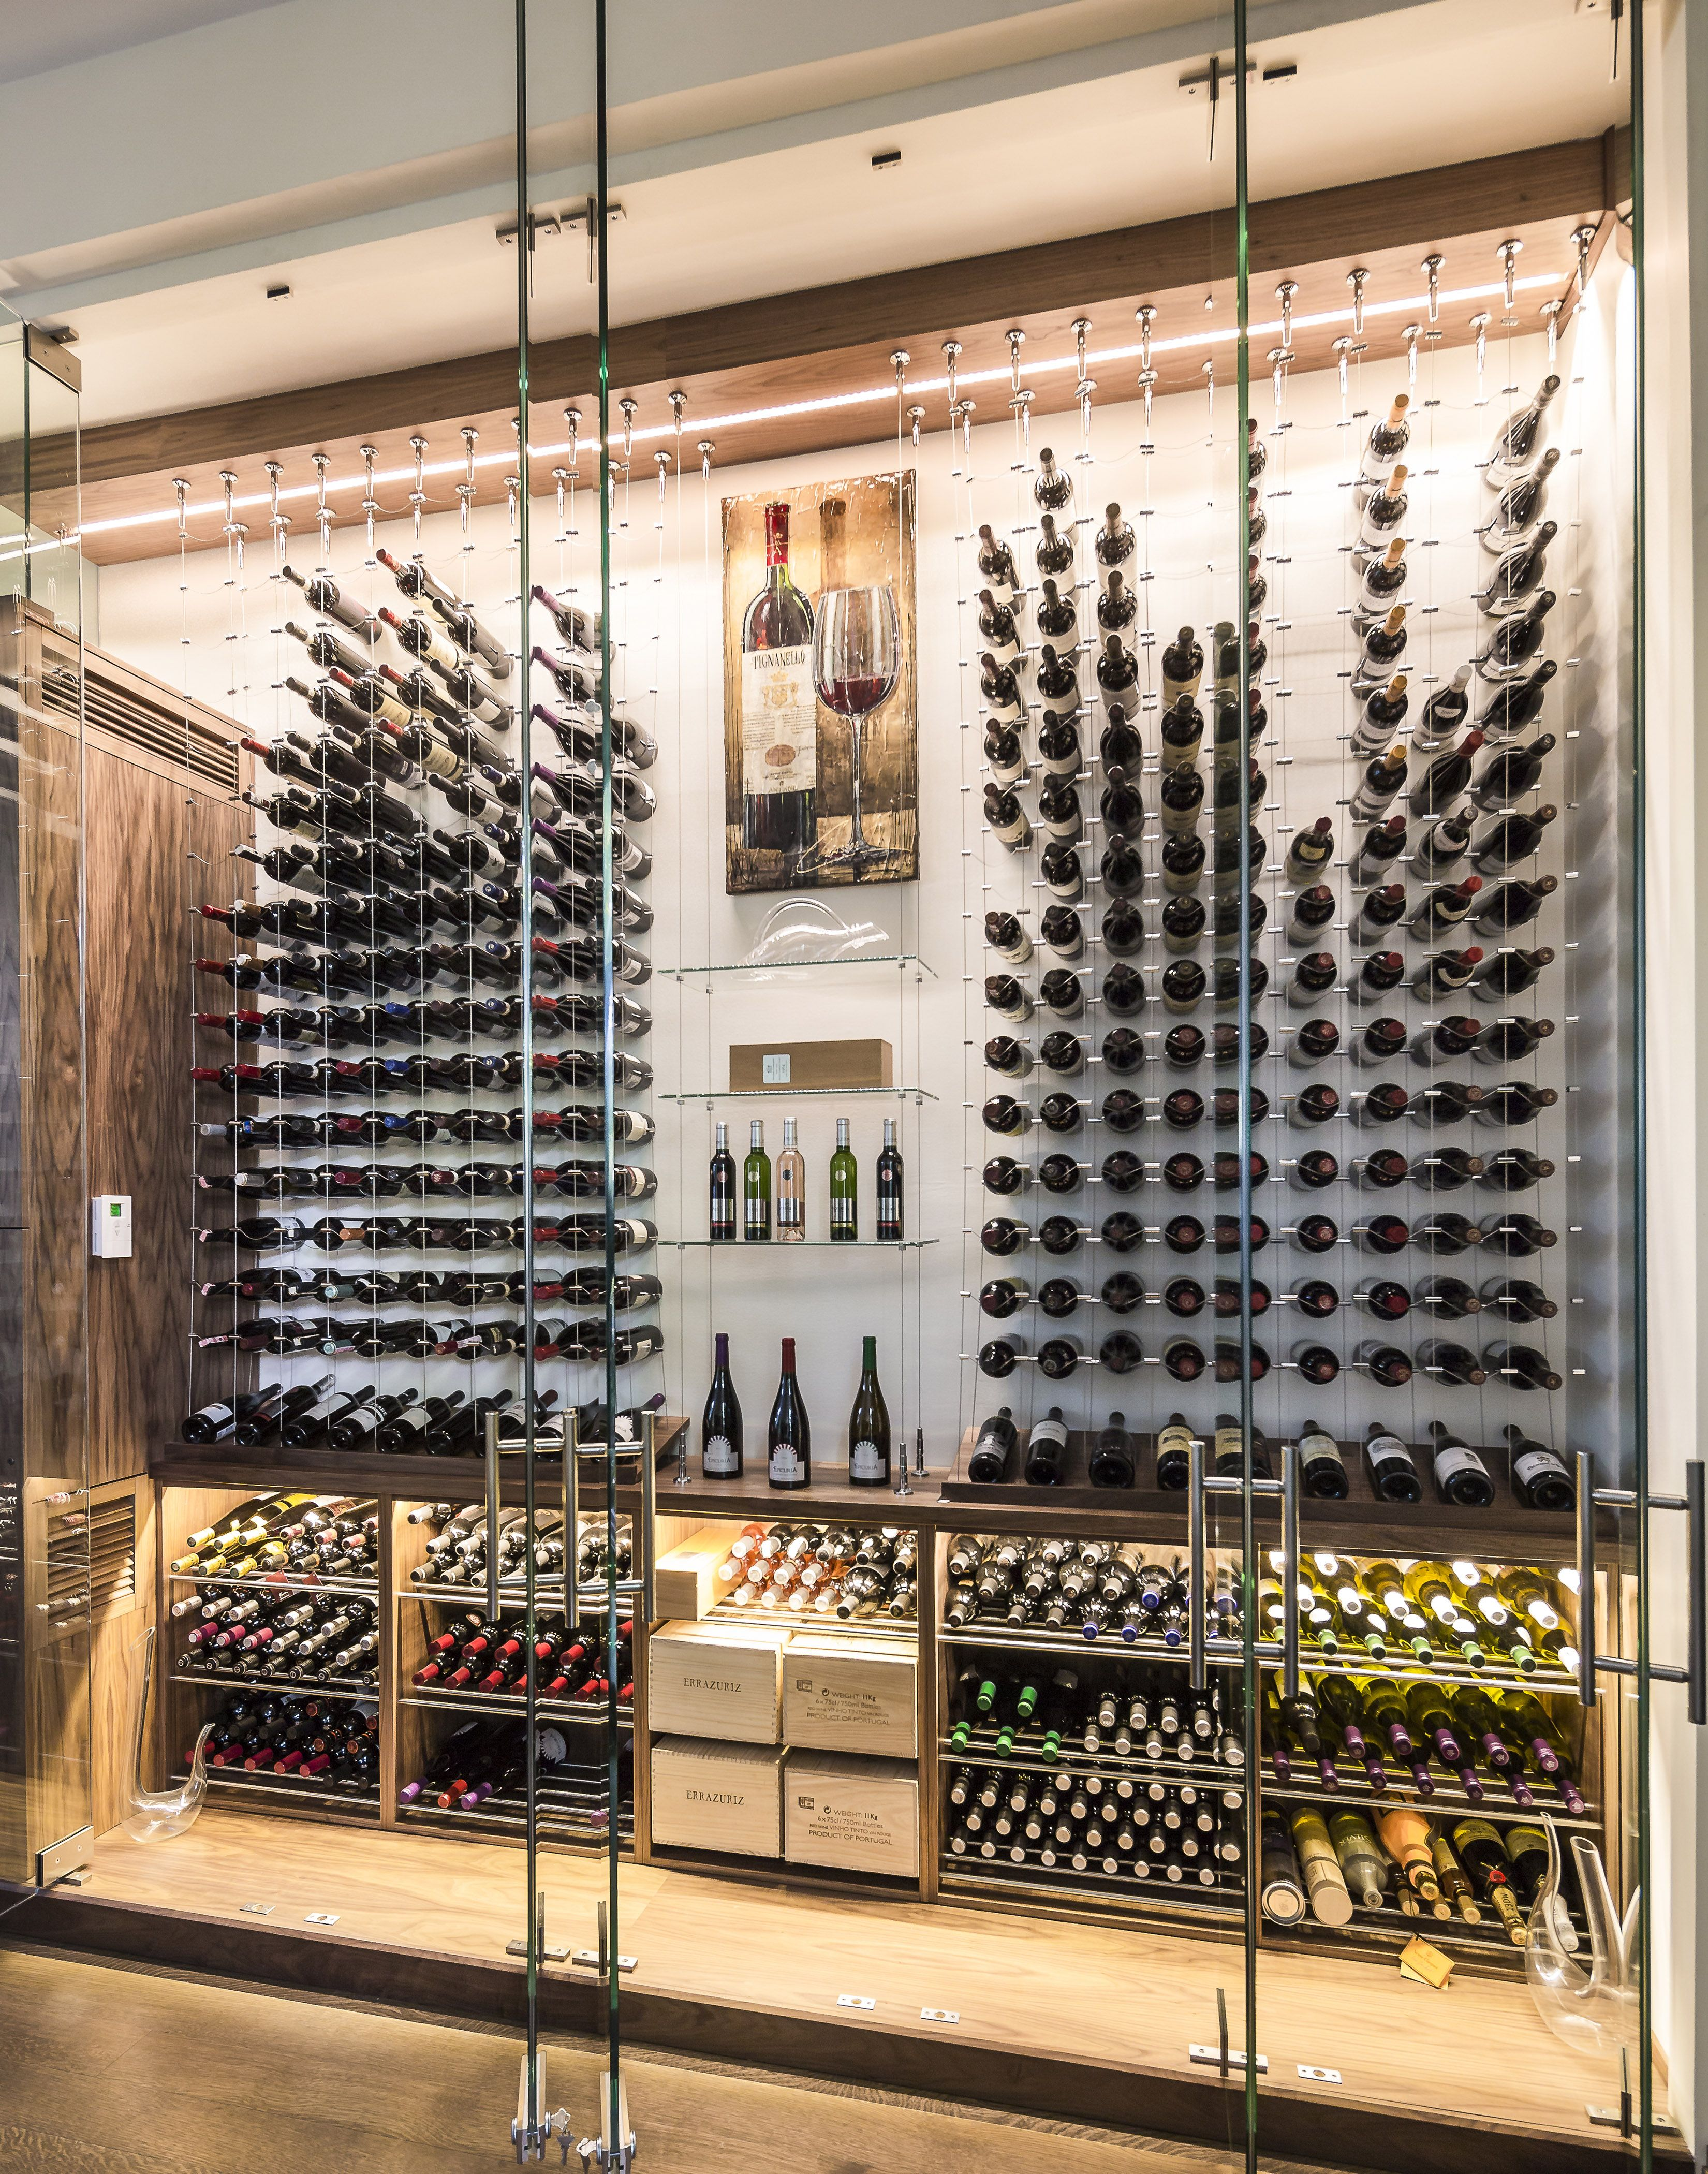 Modern Custom Reach In Wine Cellar Featuring The Cable Wine System Www Cablewinesystems Com Designed And Home Wine Cellars Wine Cellar Design Glass Wine Cellar